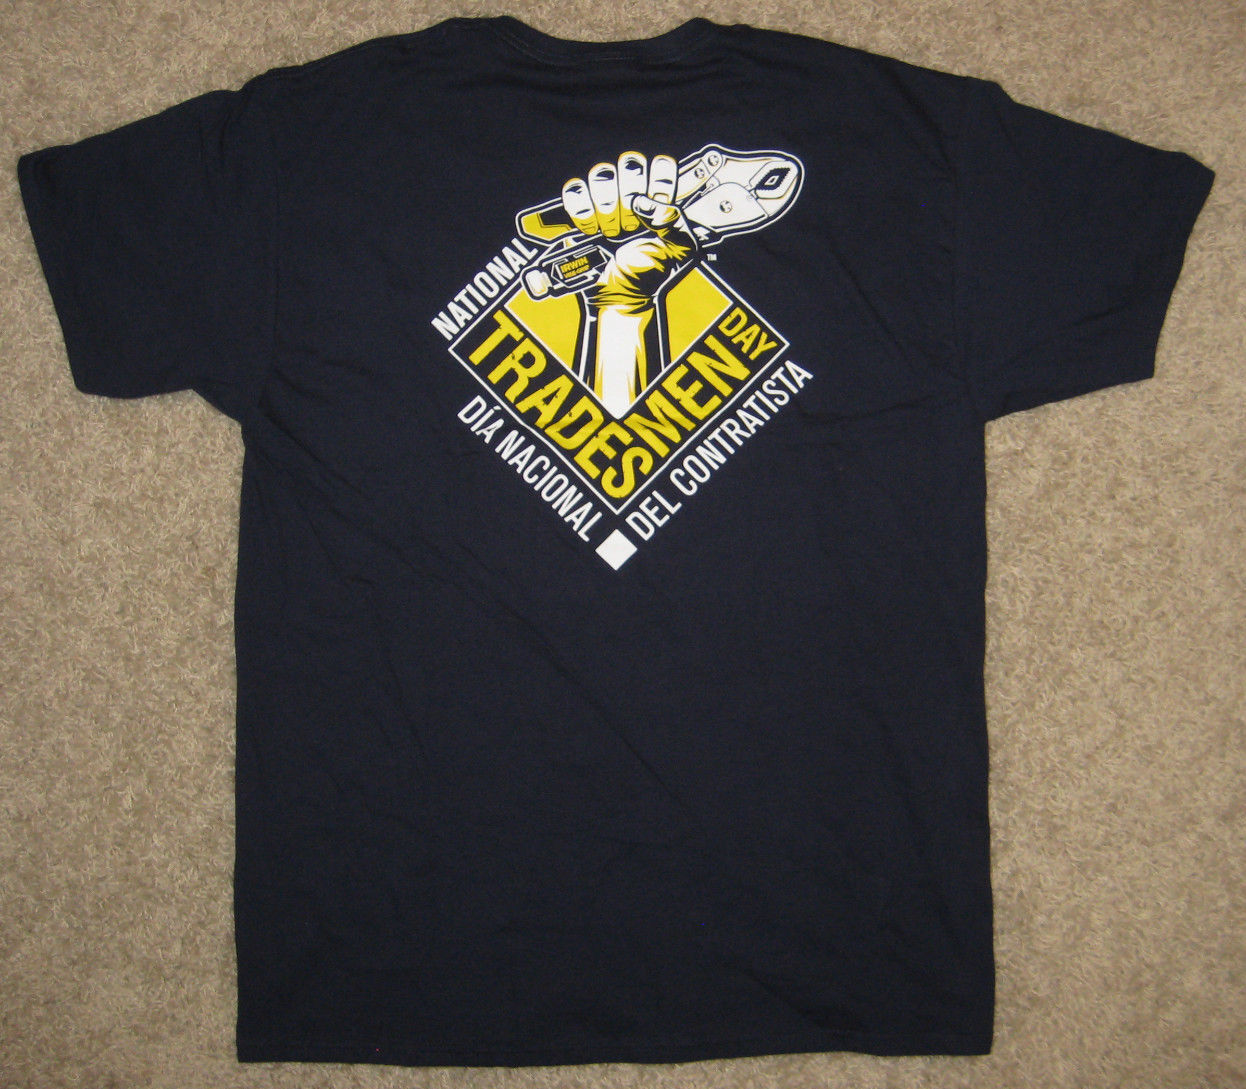 IRWIN Tools ~ National Tradesmen Day ~ T-Shirt, Fruit of the